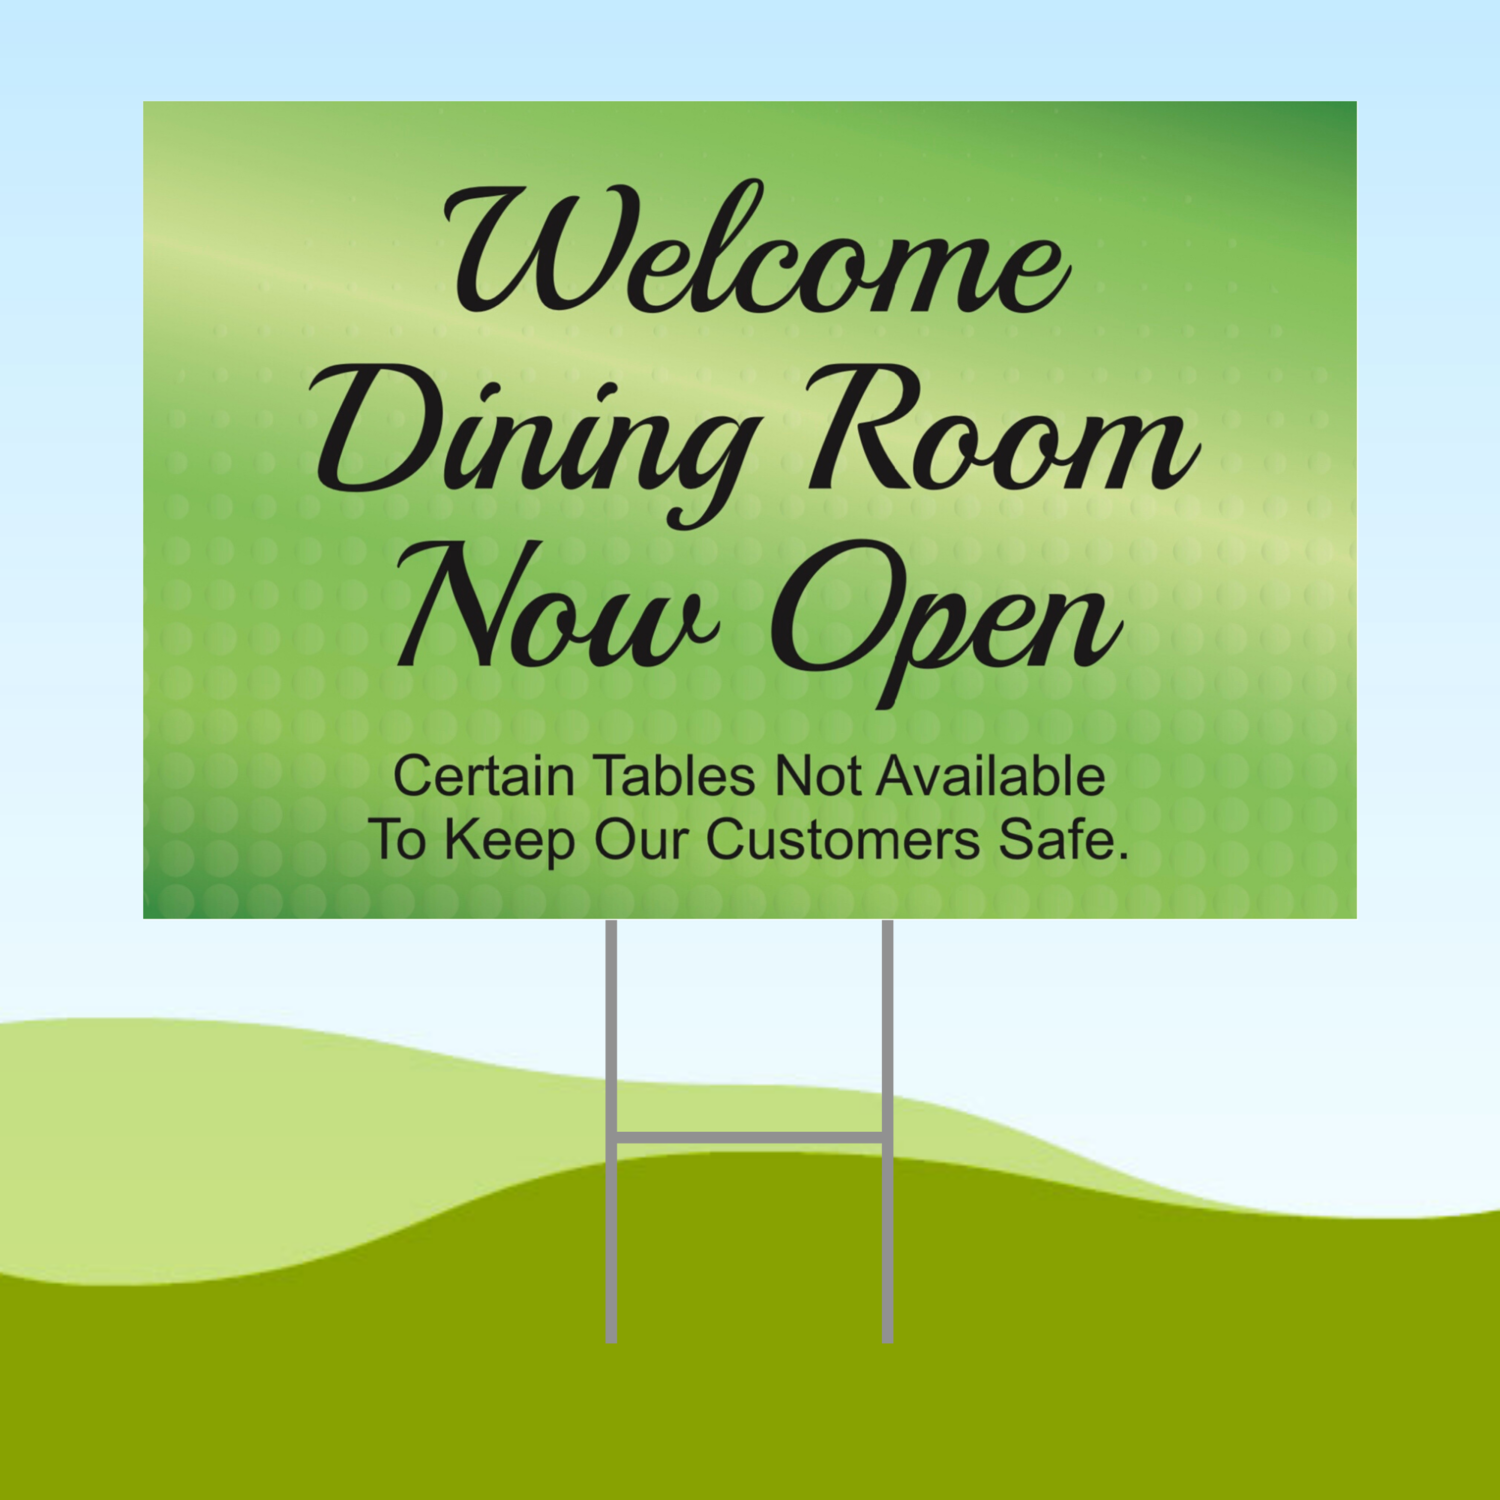 Welcome Dining Room Now Open 18x24 Yard Sign WITH STAKE Corrugated Plastic Bandit